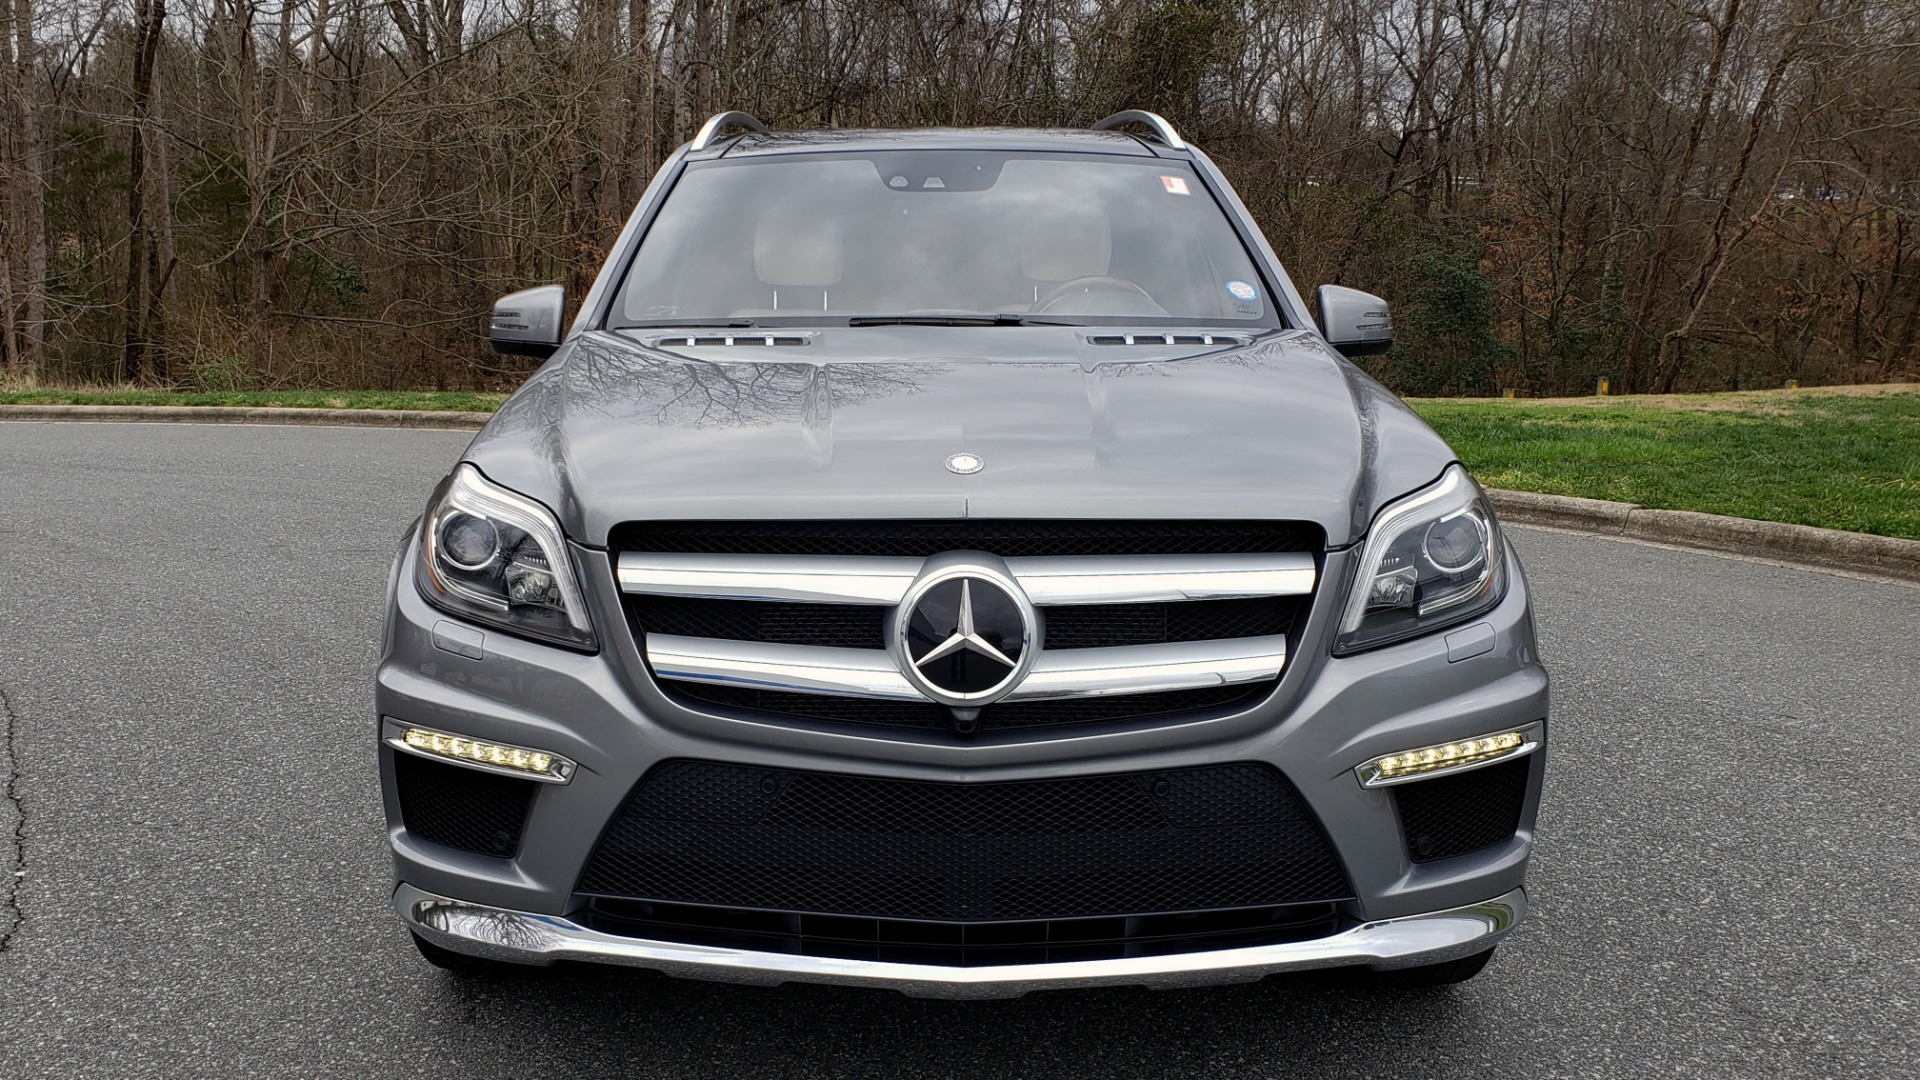 Used 2016 Mercedes-Benz GL 550 4MATIC / NAV / DRVR ASST / DUAL-ROOF / REARVIEW for sale Sold at Formula Imports in Charlotte NC 28227 23